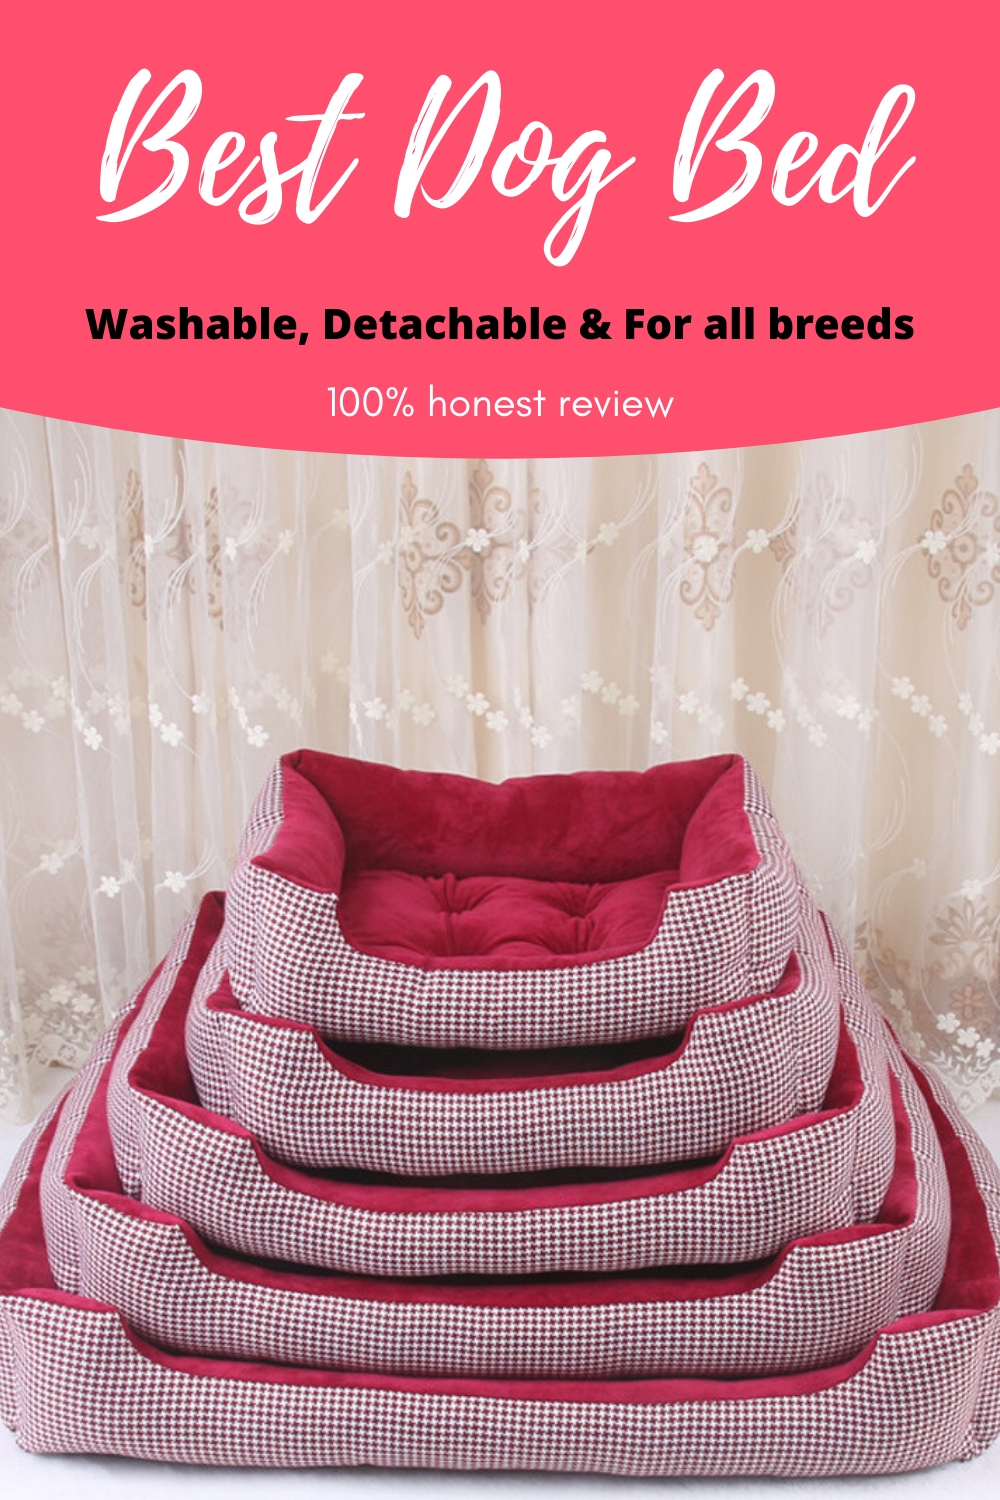 The Best Dog Bed in 2020 Dog bed, Washable dog bed, Cool